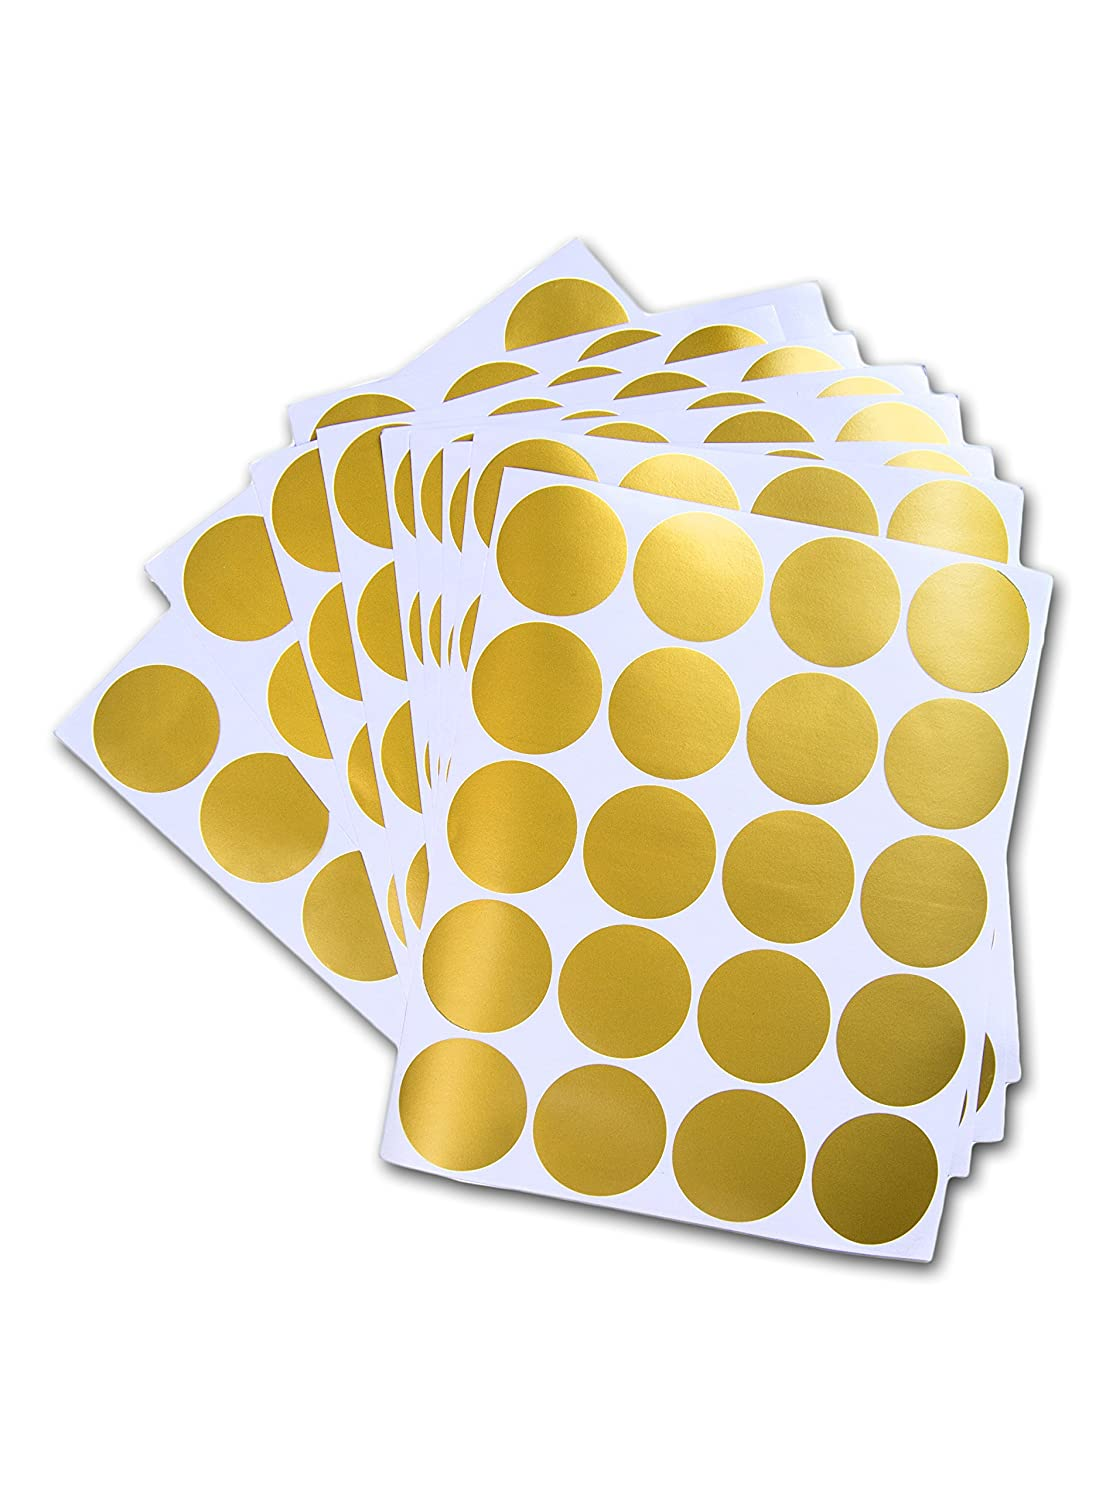 Amazon.com: Posh Dots Metallic Gold Circle Wall Decal Stickers for ...